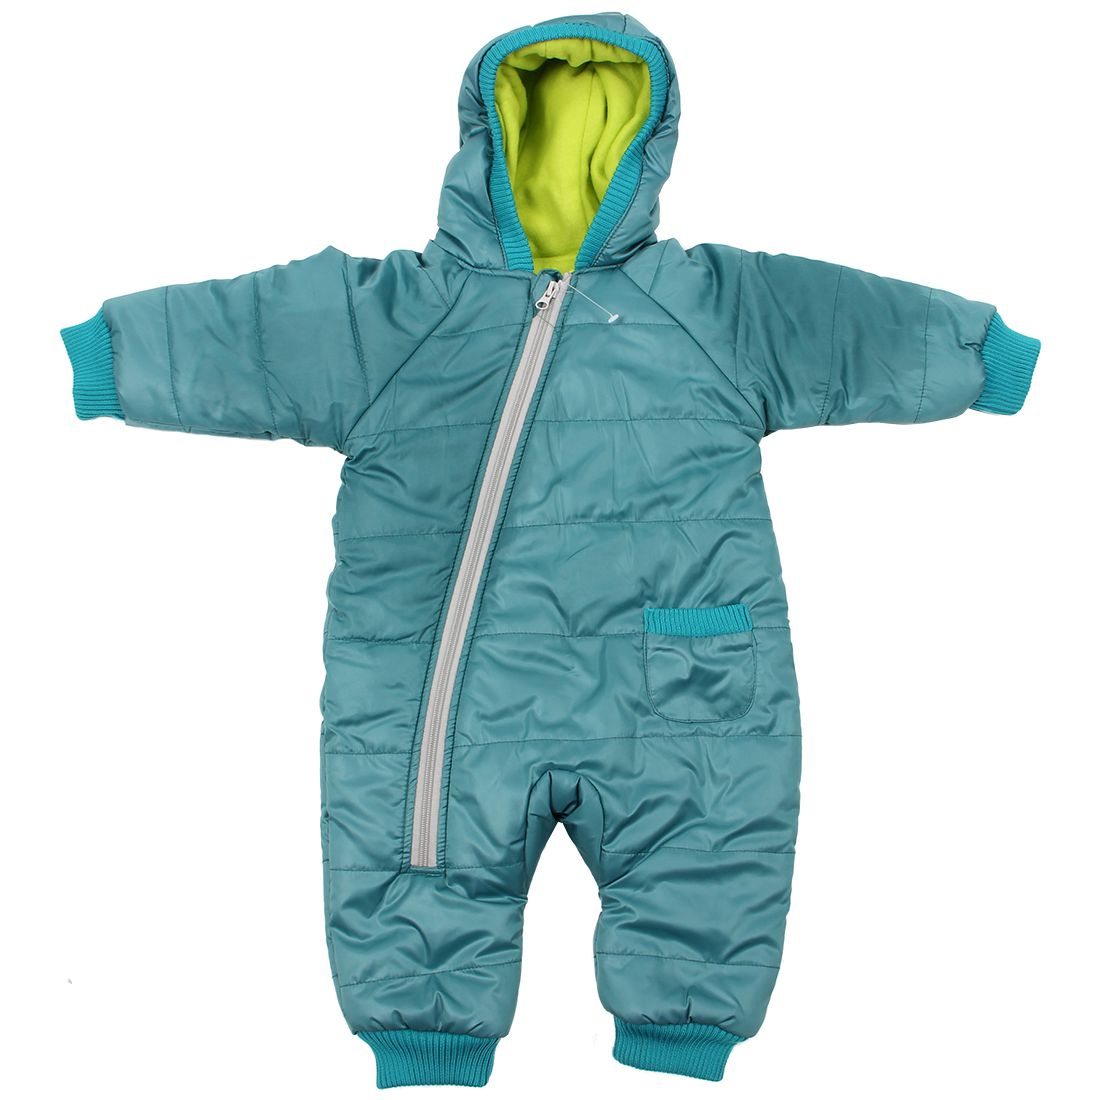 New Winter Baby Girl Boy Kid Toddler Snowsuit Coat Jacket Jumper Outwear Clothes 1PC